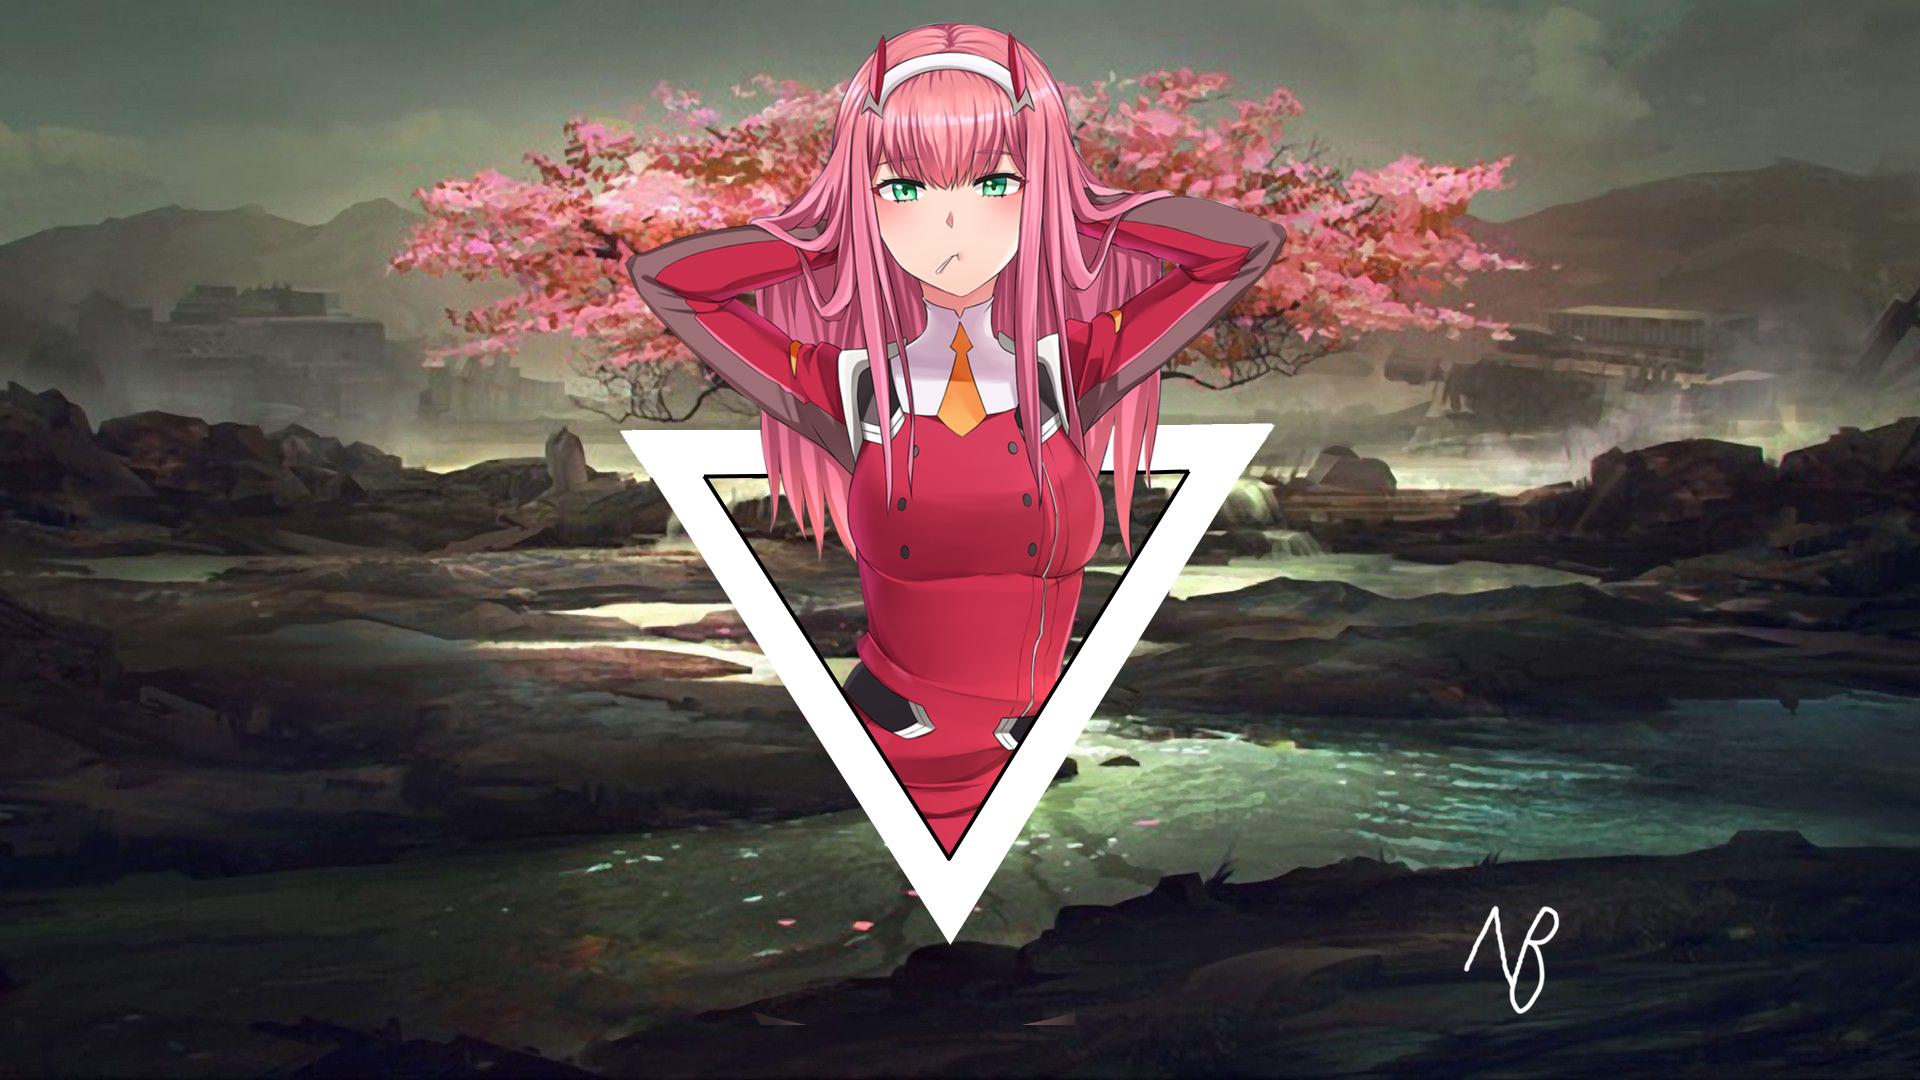 Just A Zero Two Wallpaper I Made 1920x1080 Need Trendy Iphone7 Iphone7plus Case Check O Anime Artwork Wallpaper Overwatch Drawings Background Hd Wallpaper